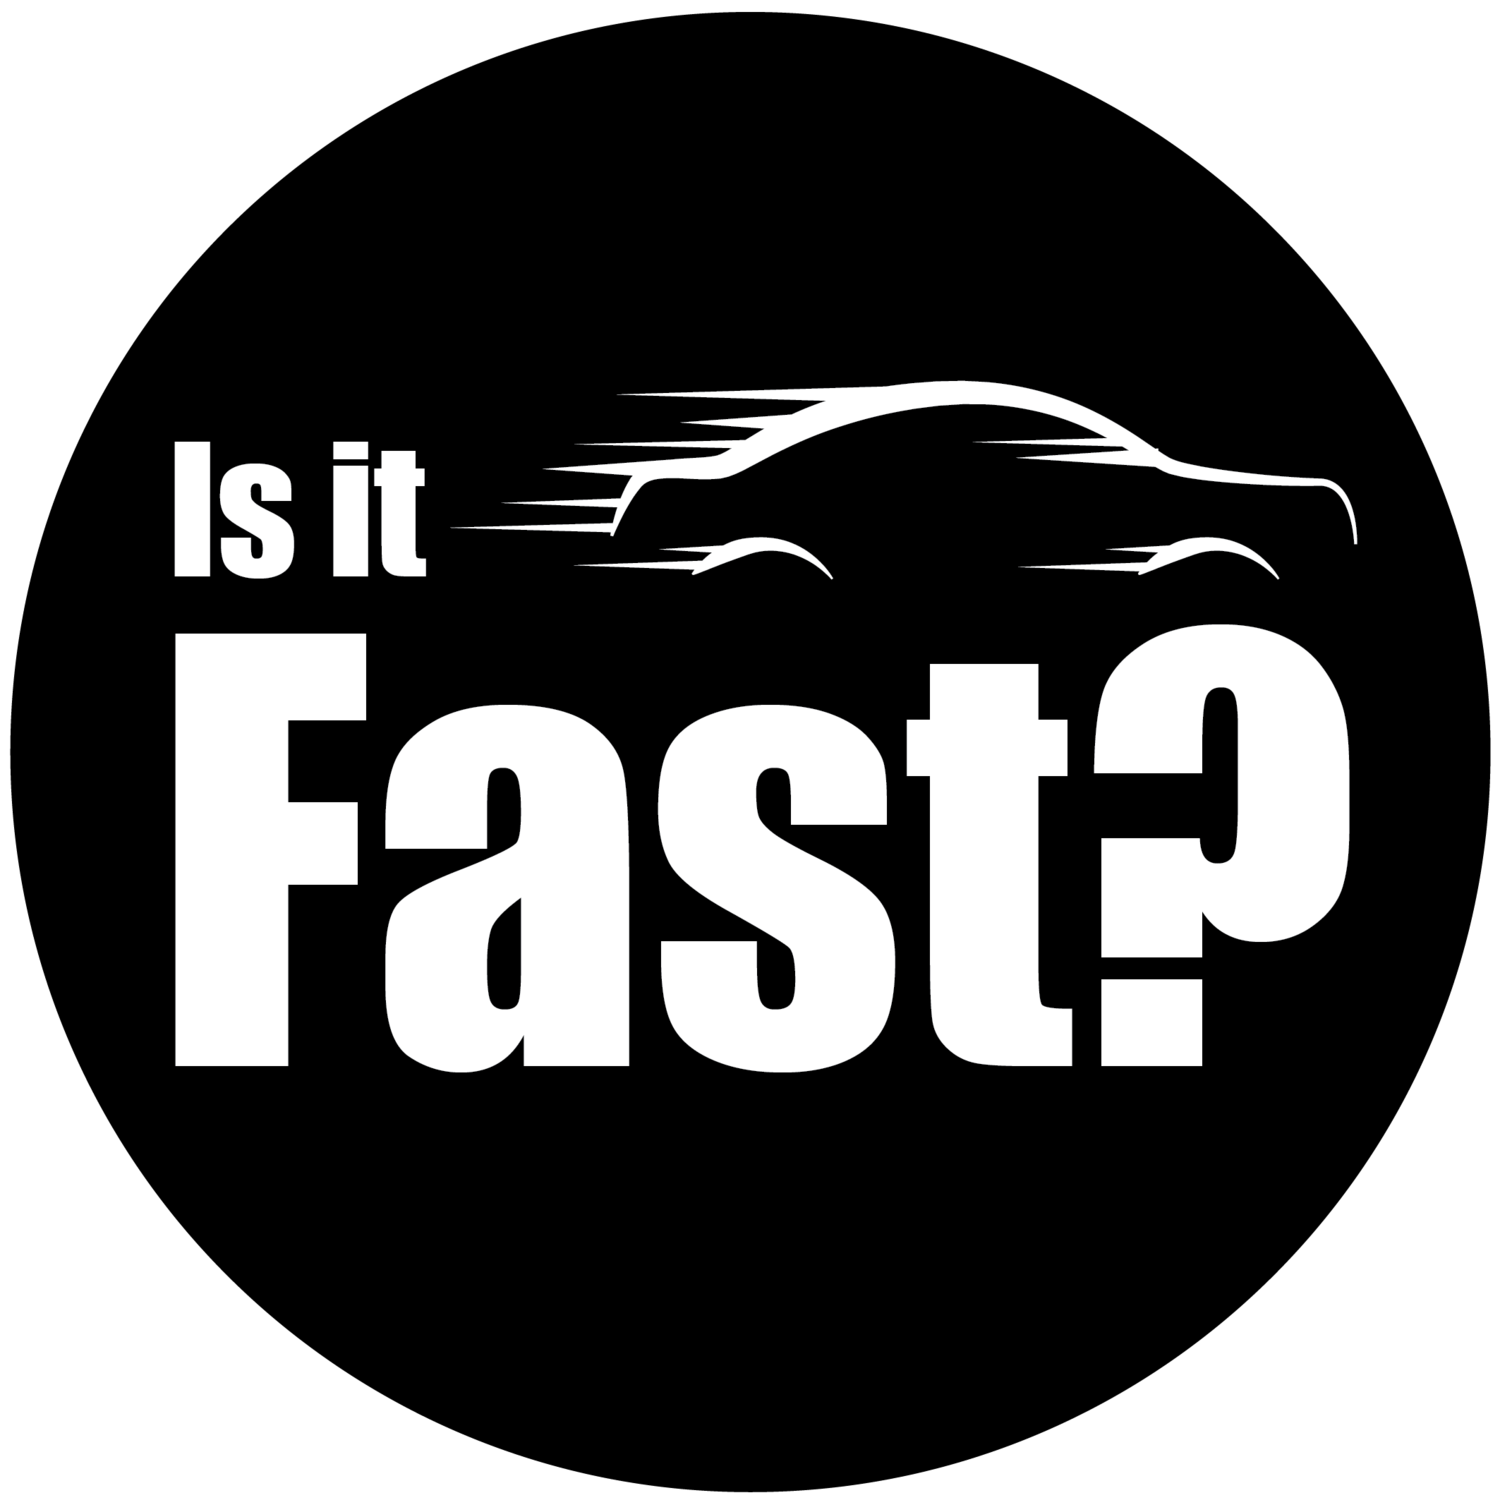 Is It Fast?